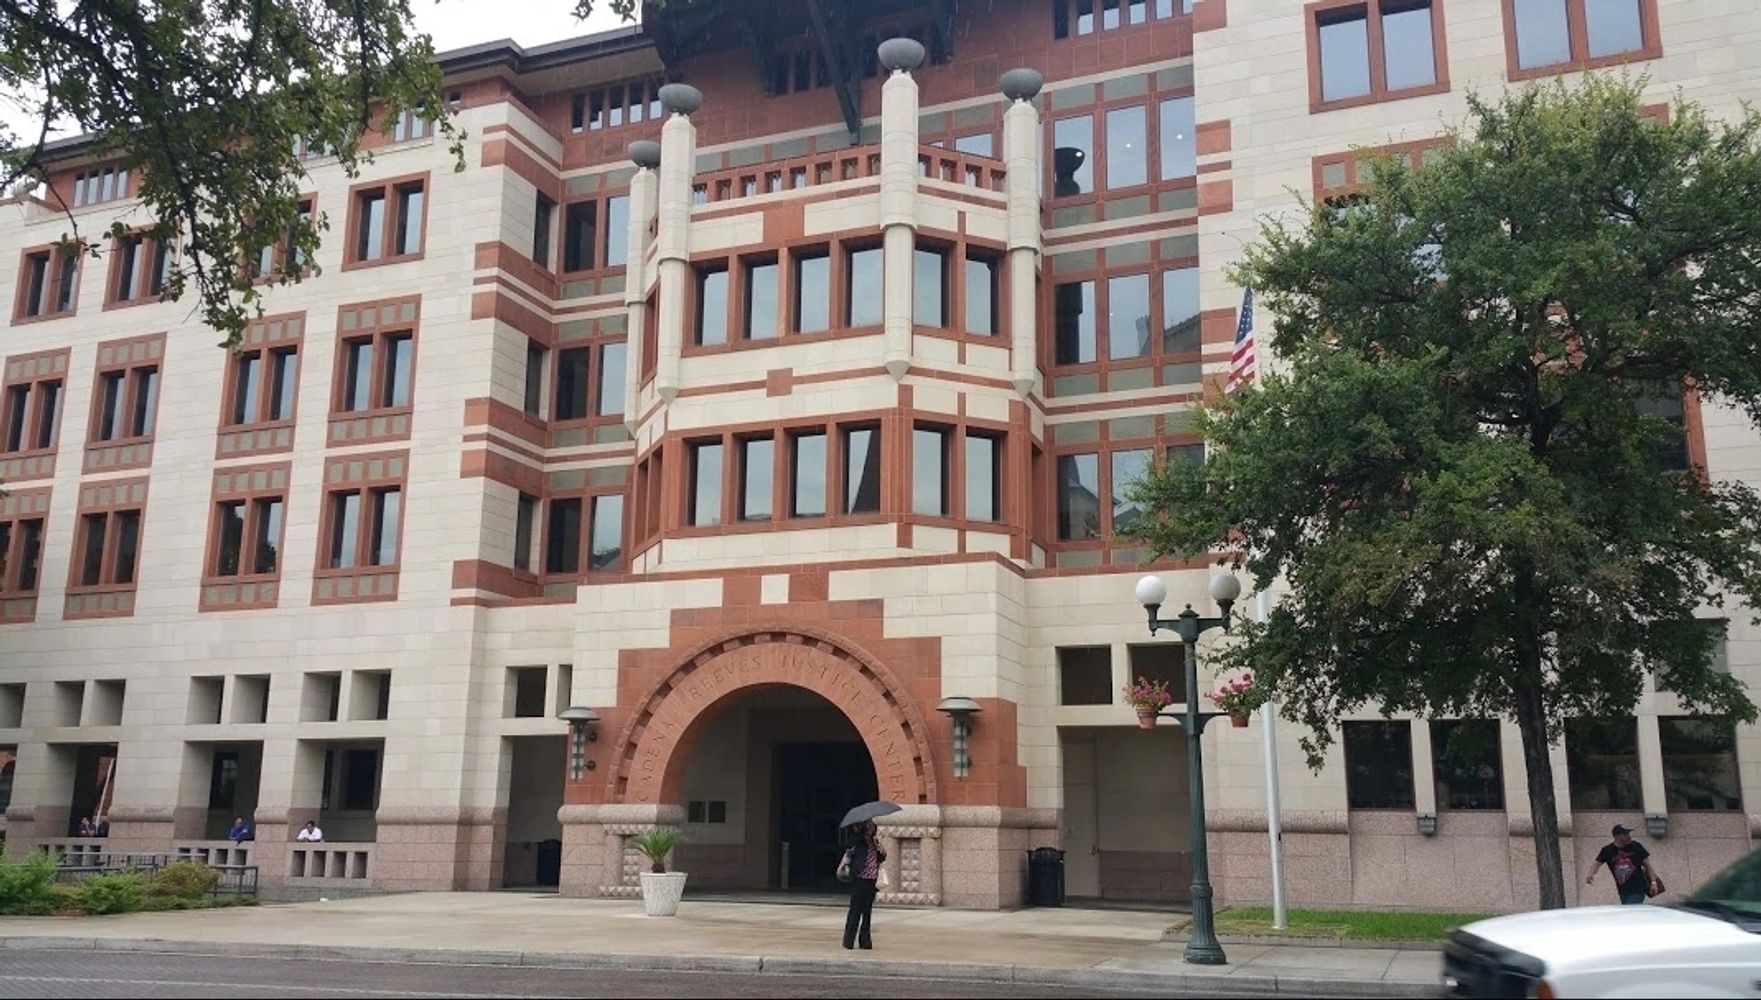 Bexar County Justice Center located at 300 Dolorosa San Antonio, TX.  From Jail to Bail to Justice.